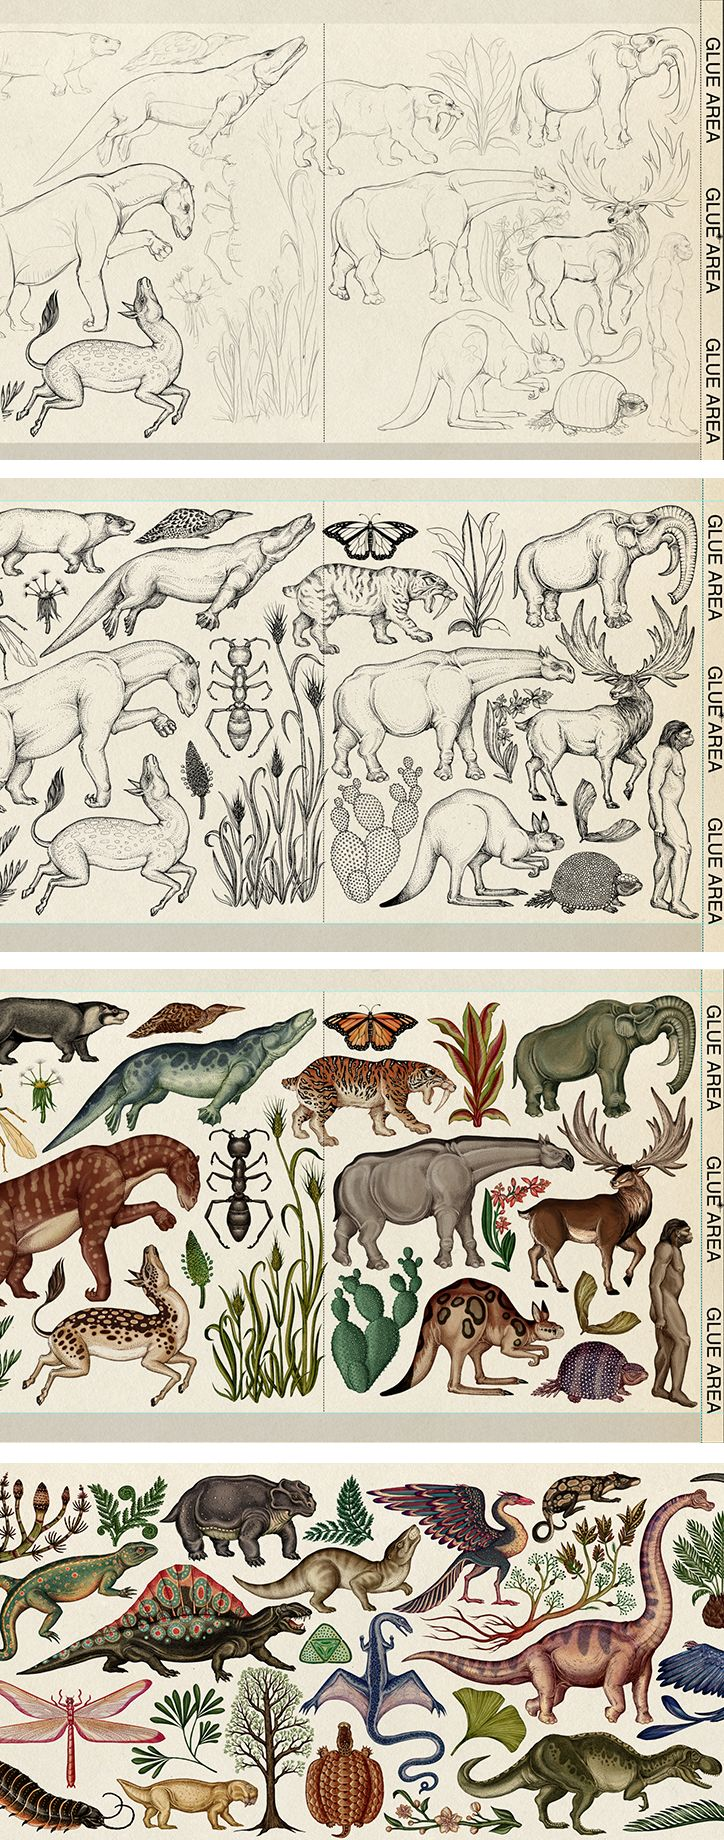 Illustrator Katie Scott shares the intricate working process behind her new book on evolution / It's Nice That